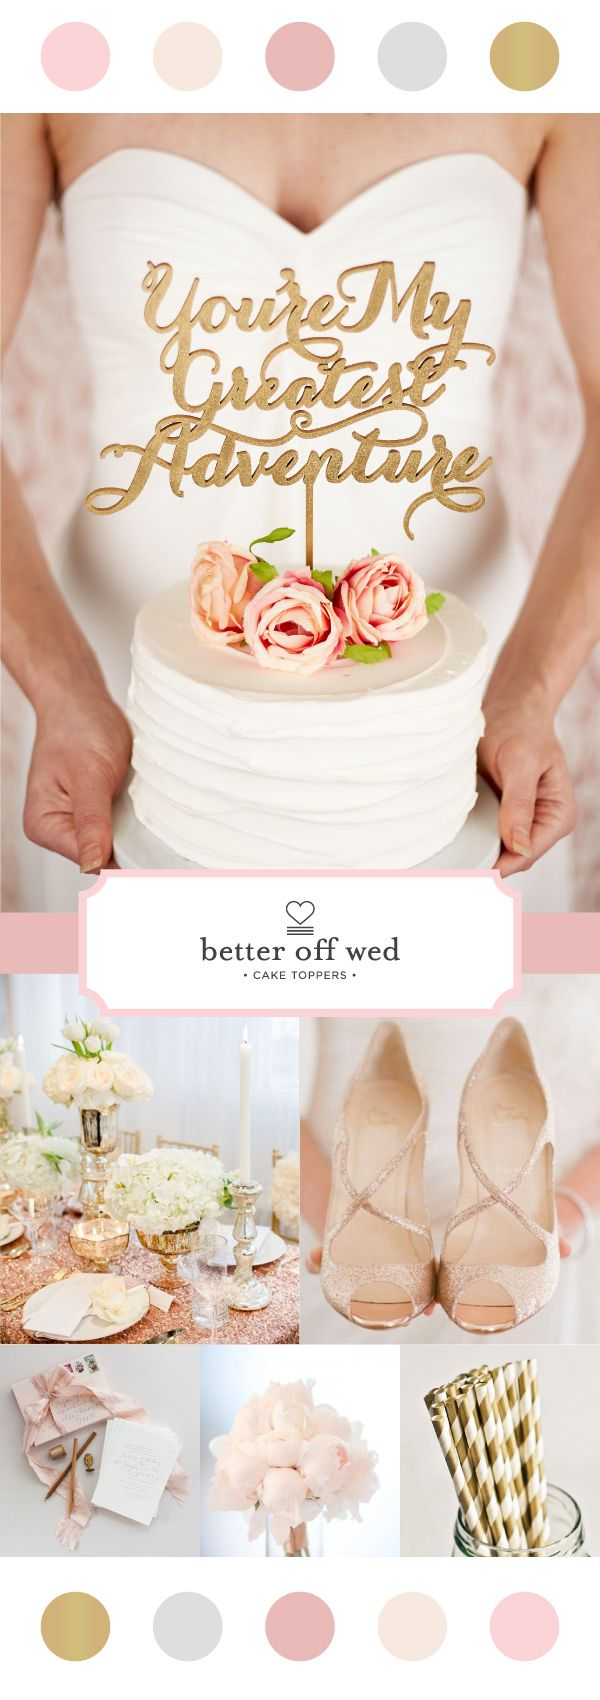 Color Crush Blush And Gold Wedding Fabulousness Cake Topper By Better Off Wed Https Www Etsy Com Shop Betterof Adventure Cake Topper Blush And Gold Wedding